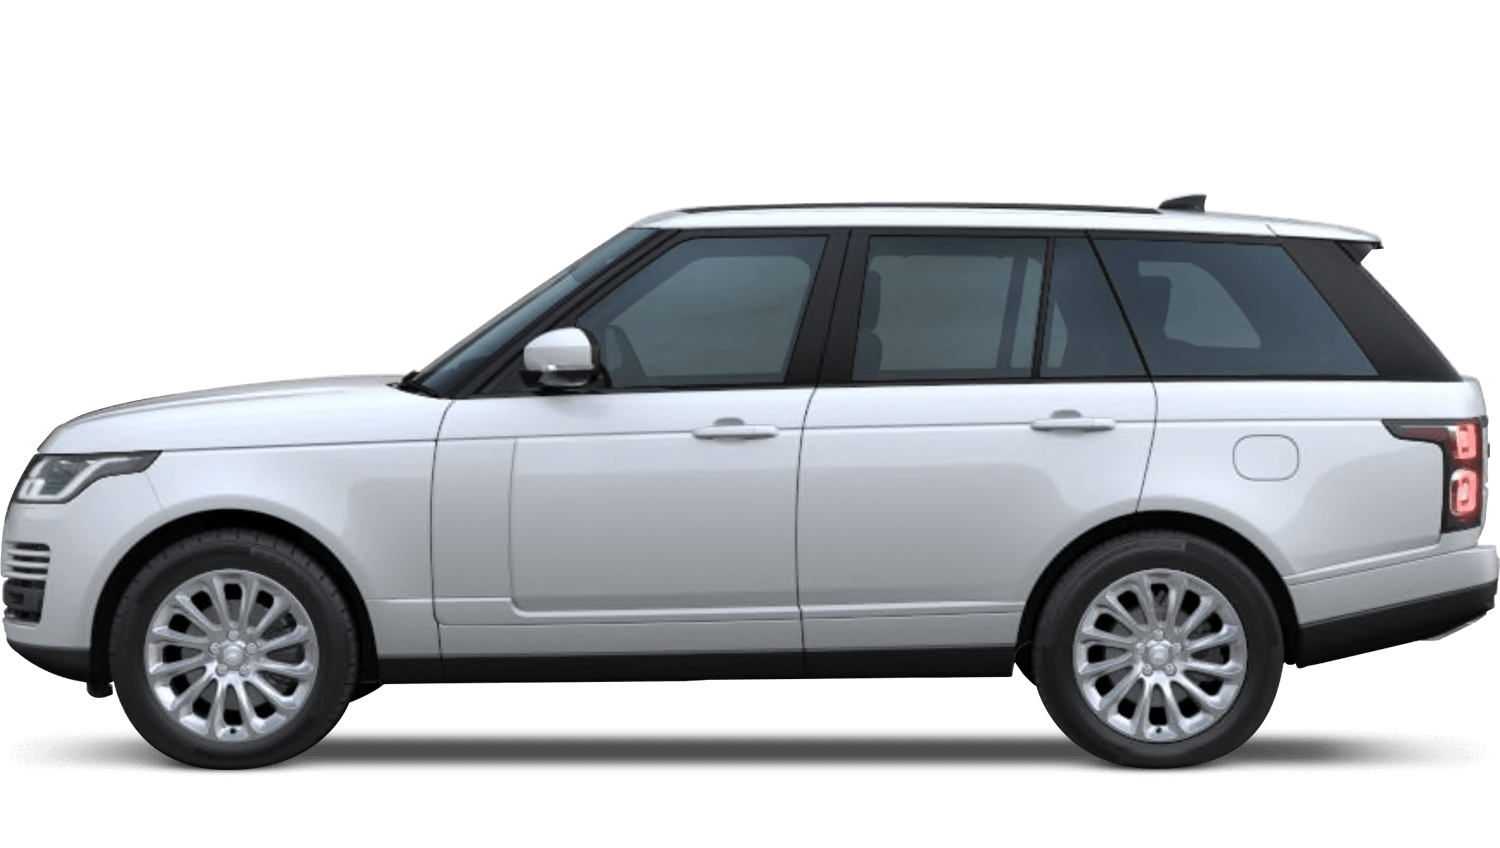 Fuji White (Solid) Land Rover Range Rover Phev